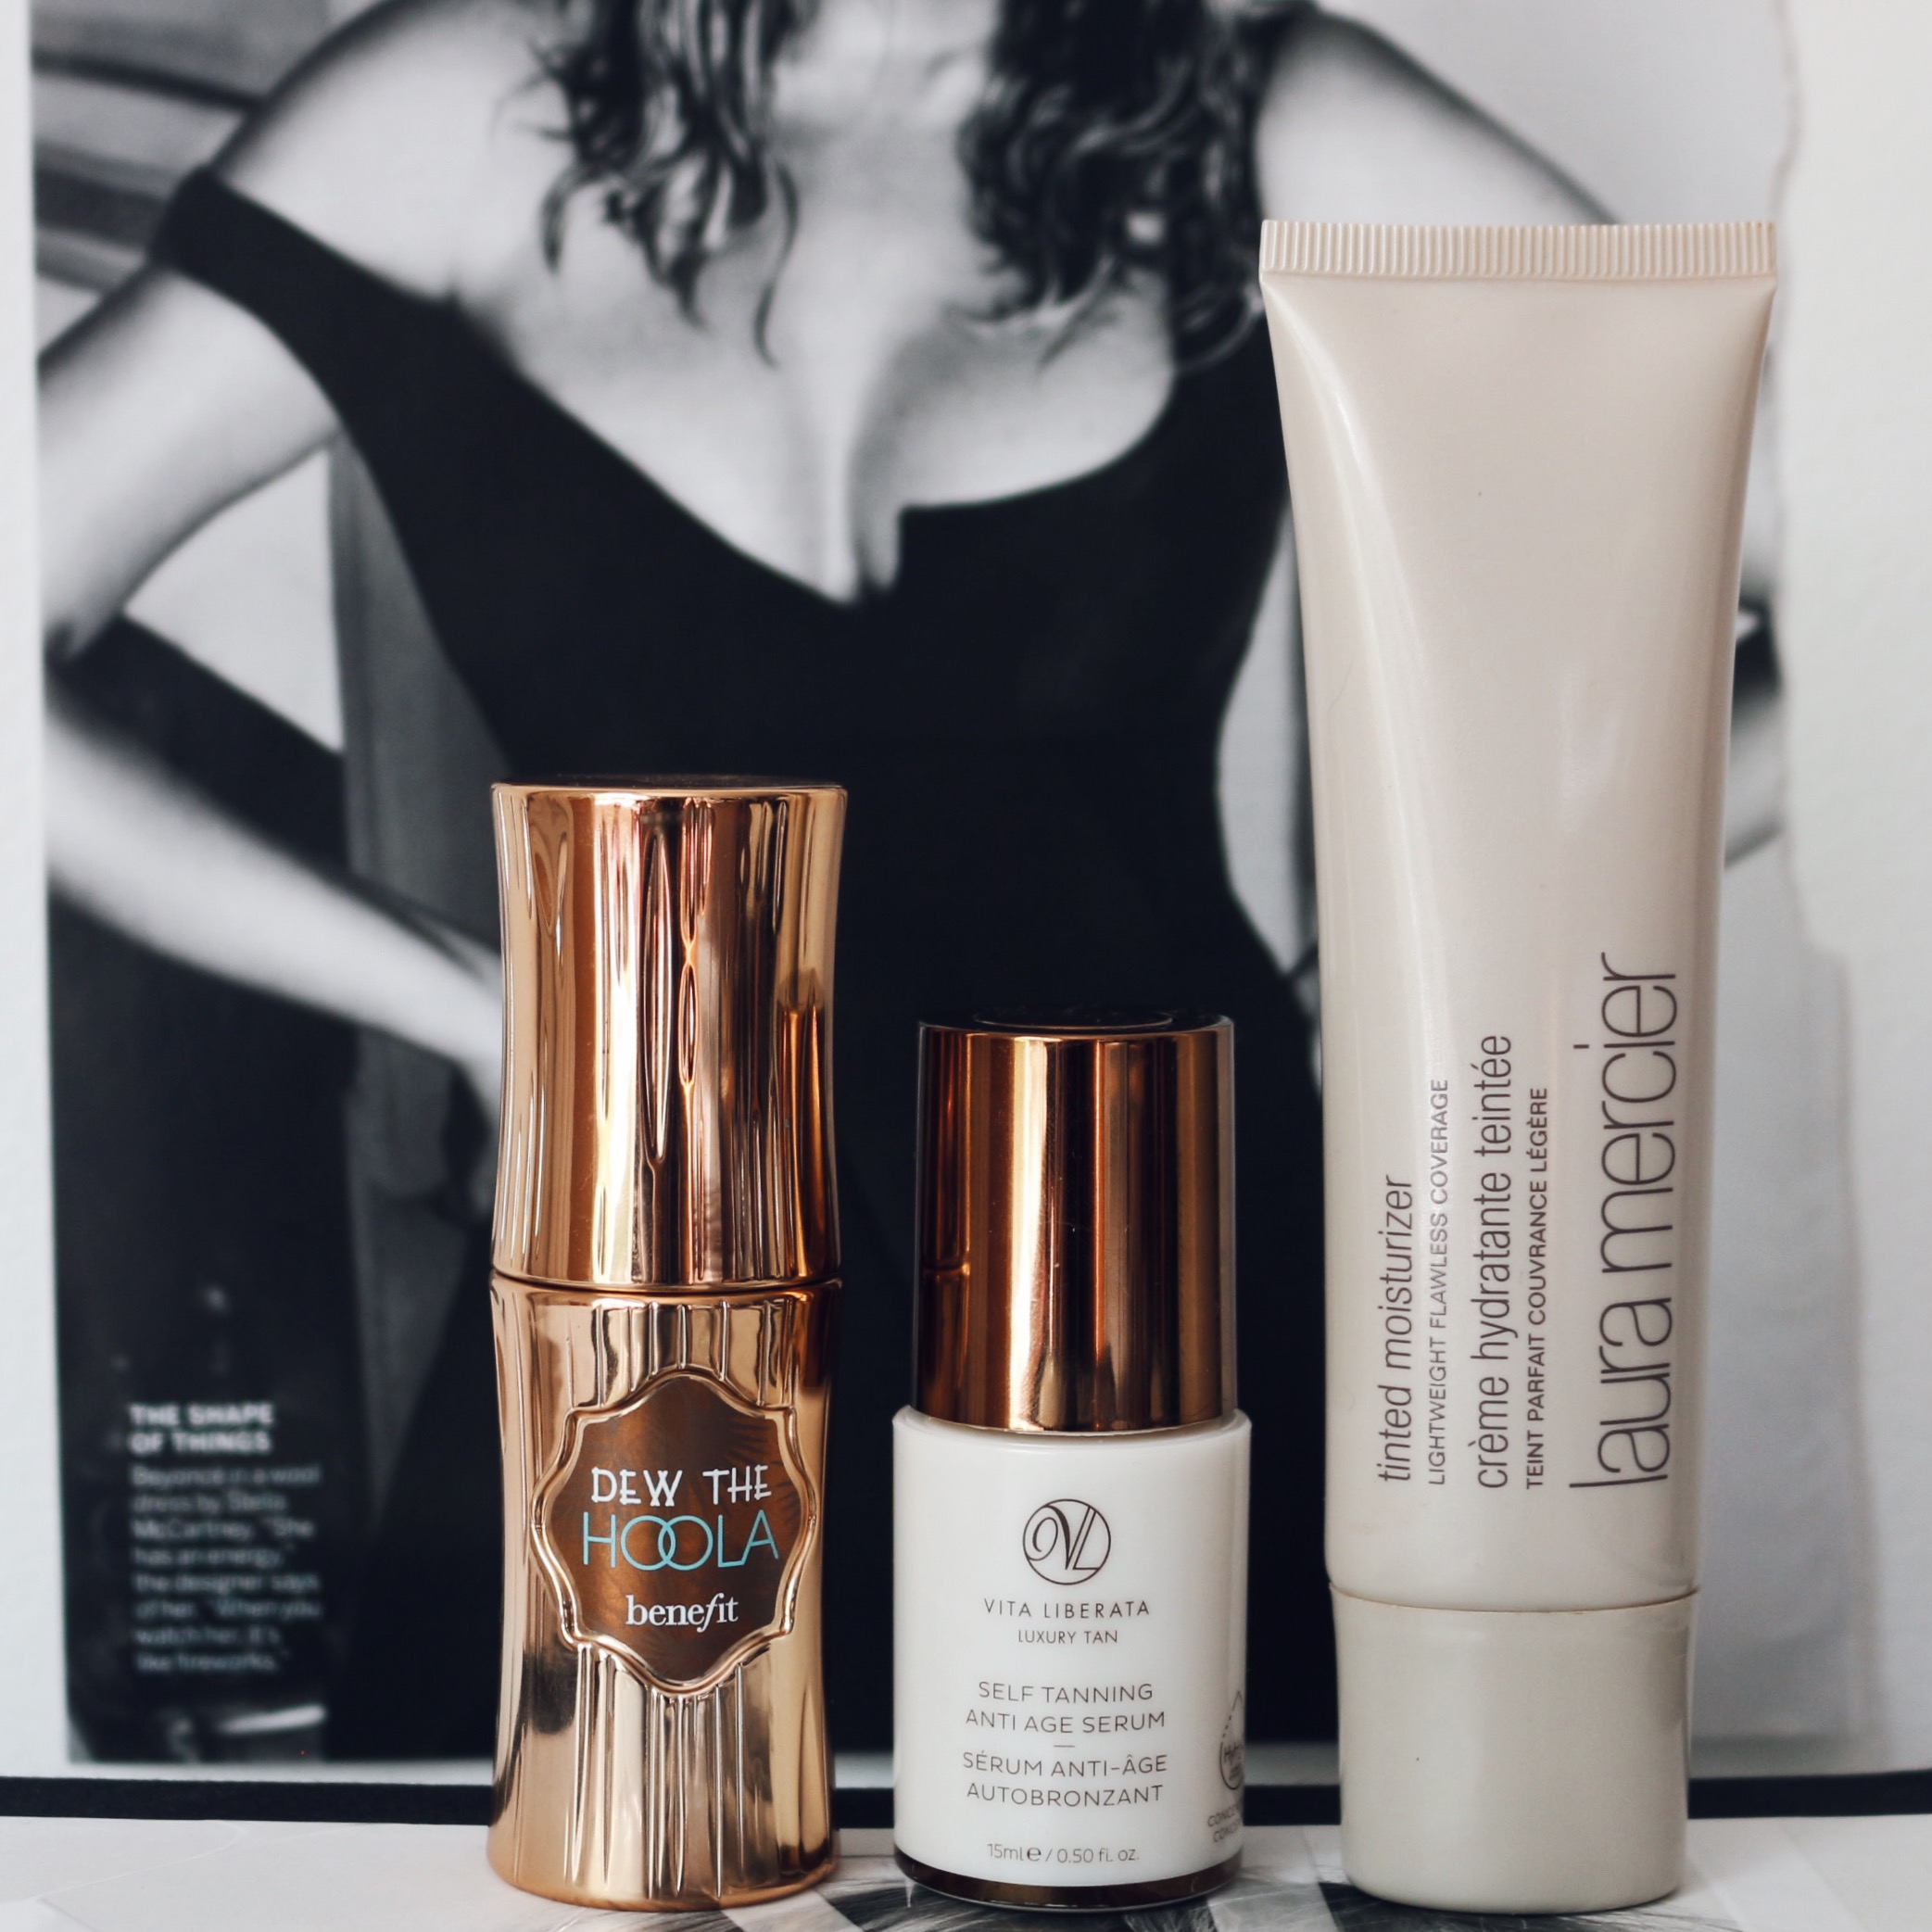 WOAHSTYLE.COM-How To Fake the Perfect Tan-Faux Tanning Week_7655.JPG